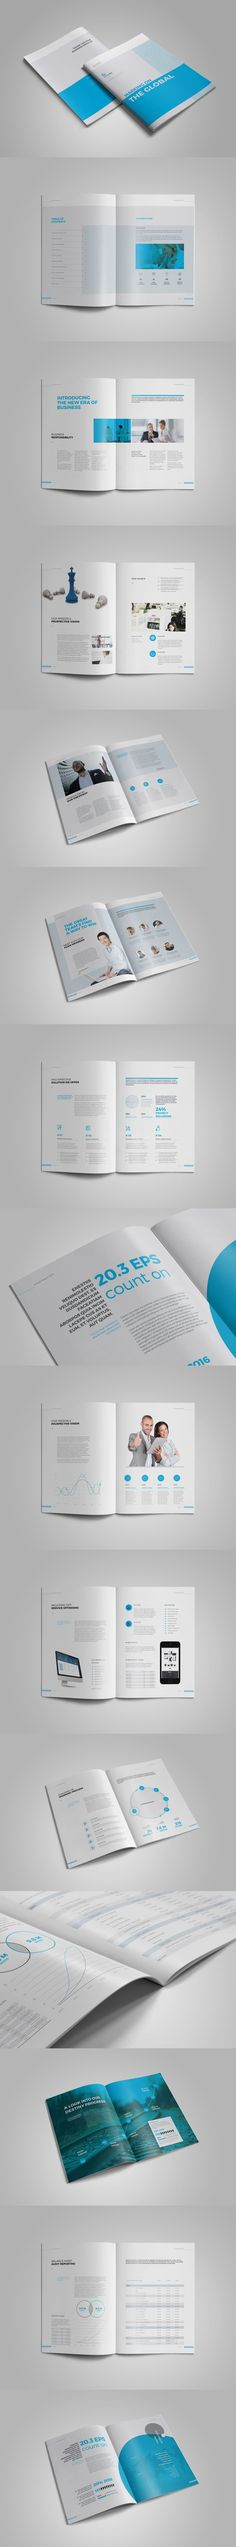 Clean \ Professional Complete Business Plan Brochure Template INDD - professional report template